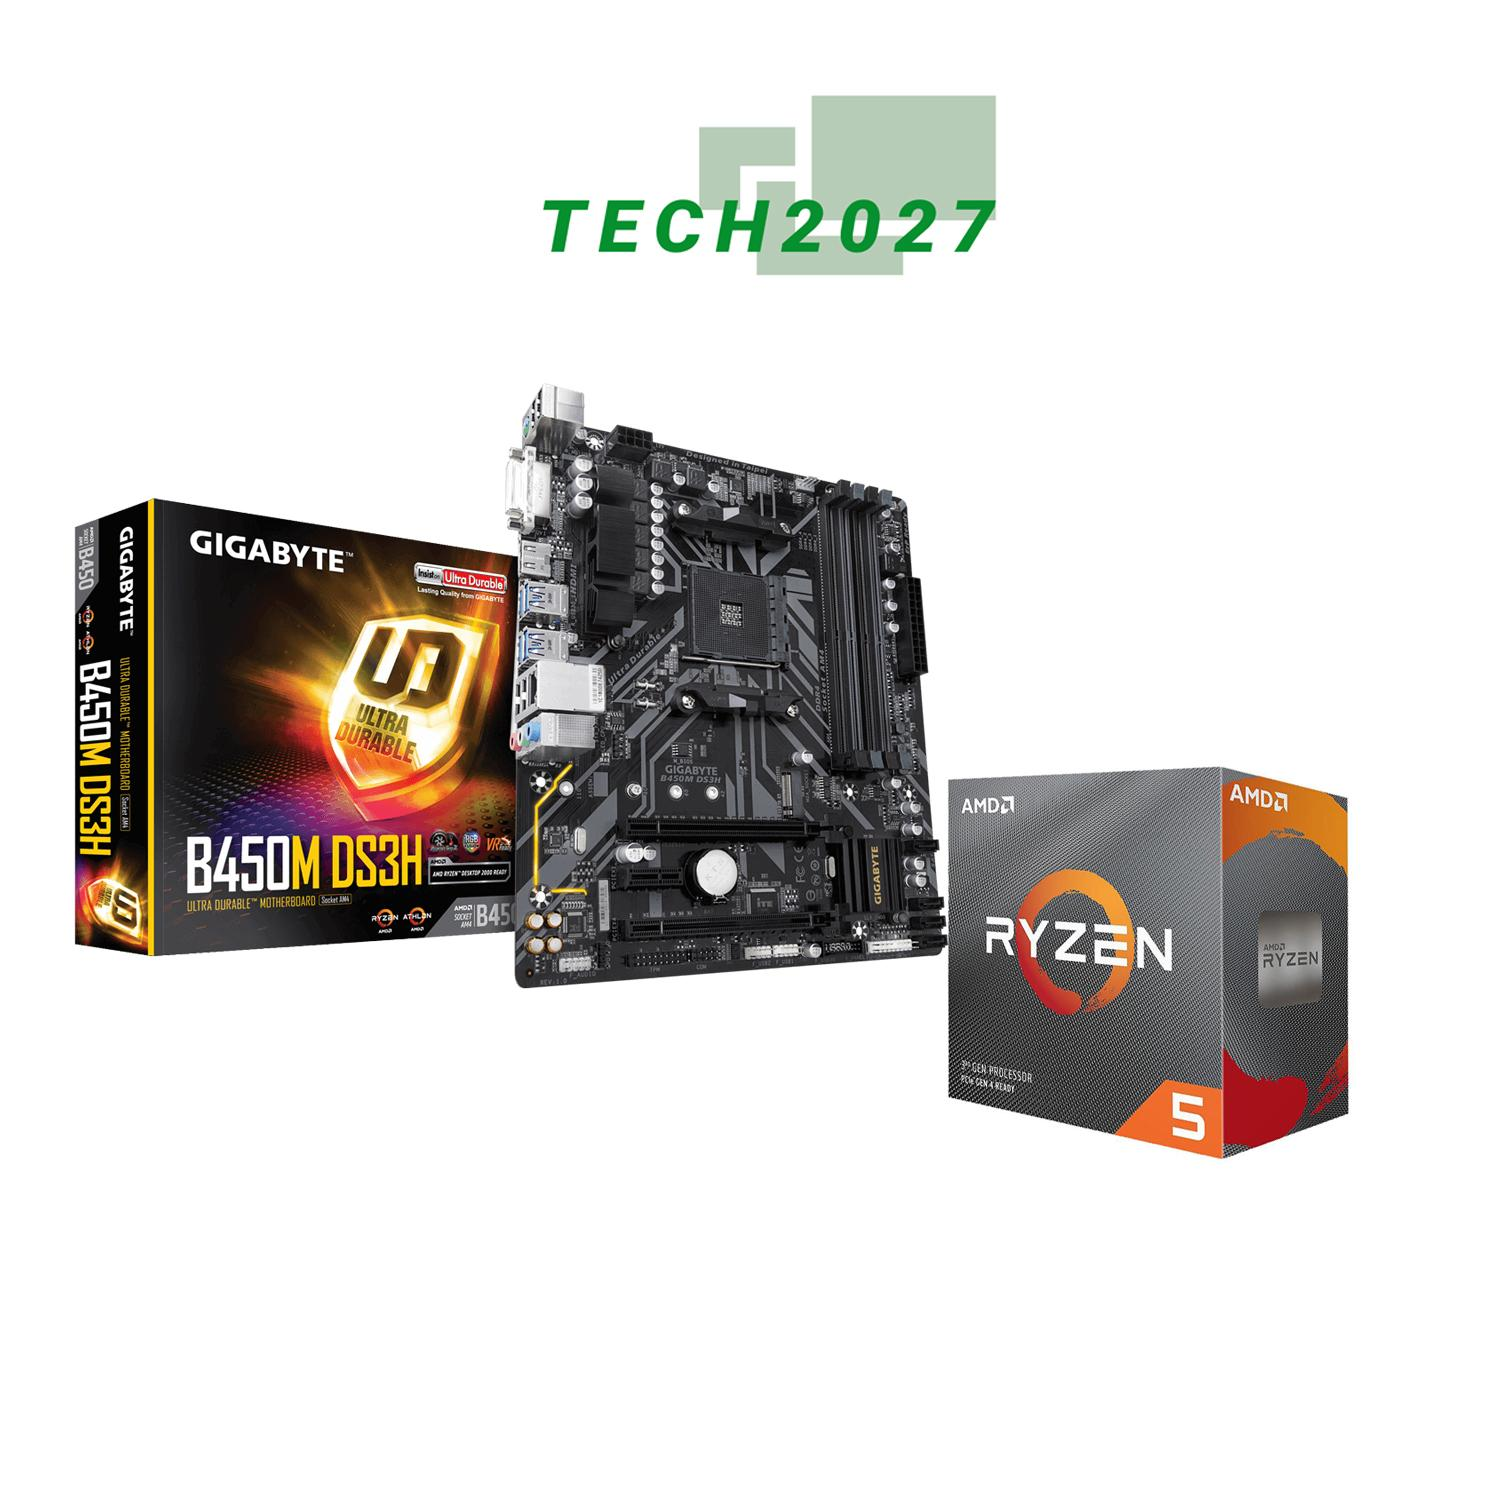 AMD RYZEN 5 3600 6-Core 3 6 GHz PROCESSOR WITH GIGABYTE B450M DS3H (updated  bios) MOTHERBOARD